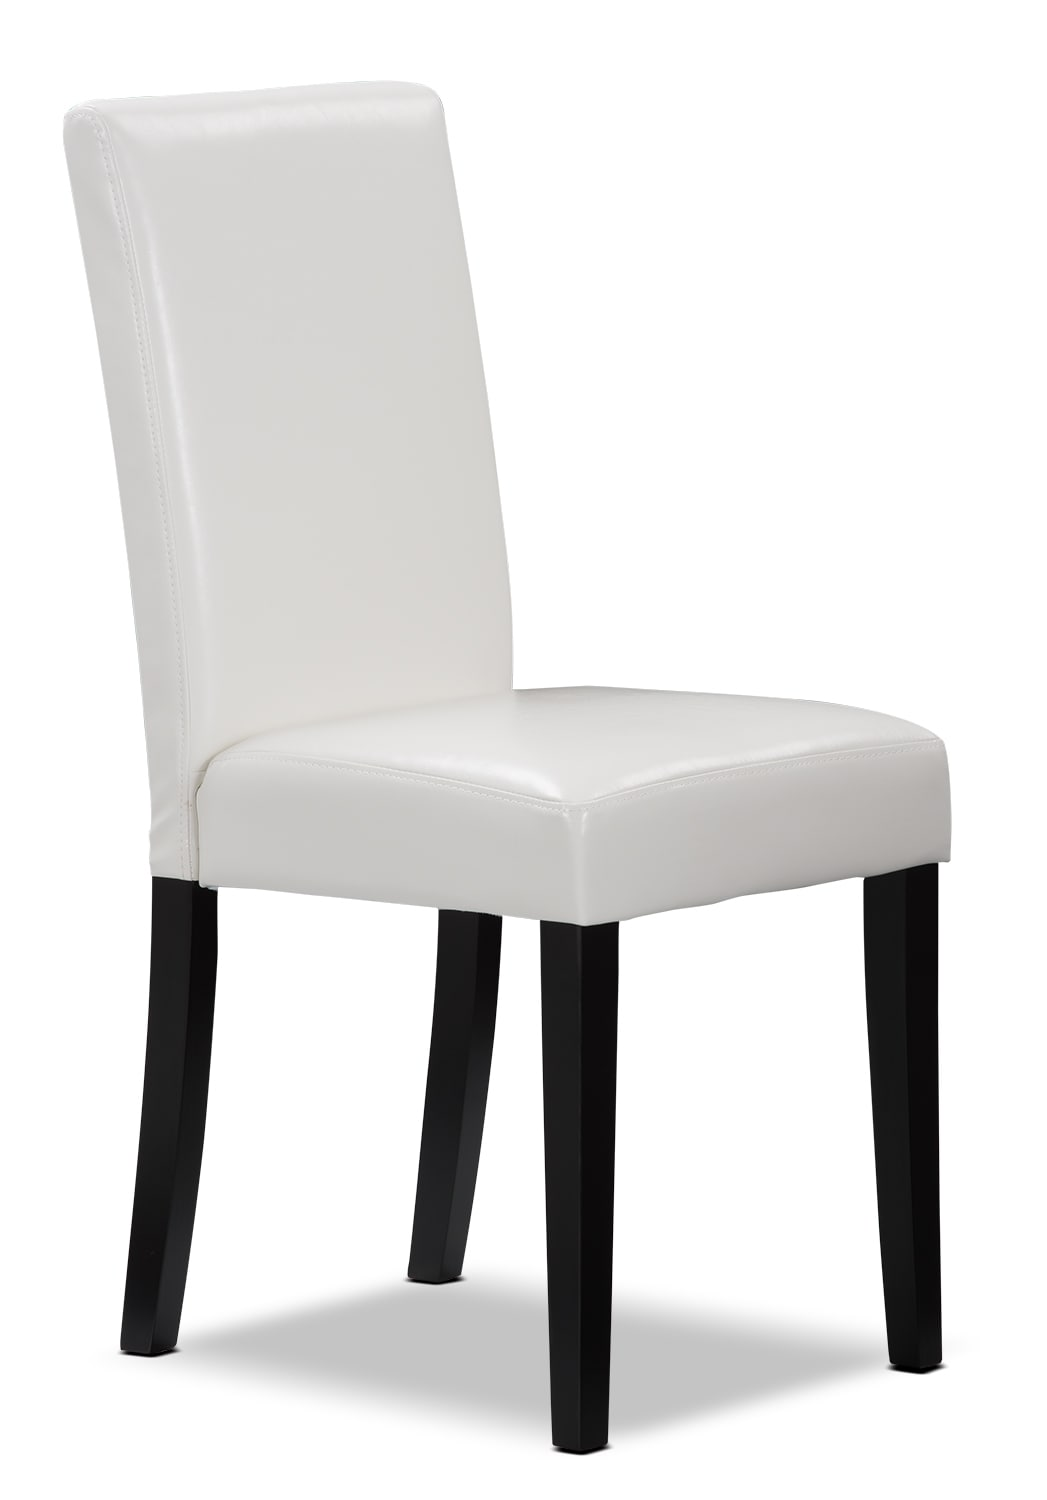 White faux leather accent dining chair united furniture for White leather dining chairs